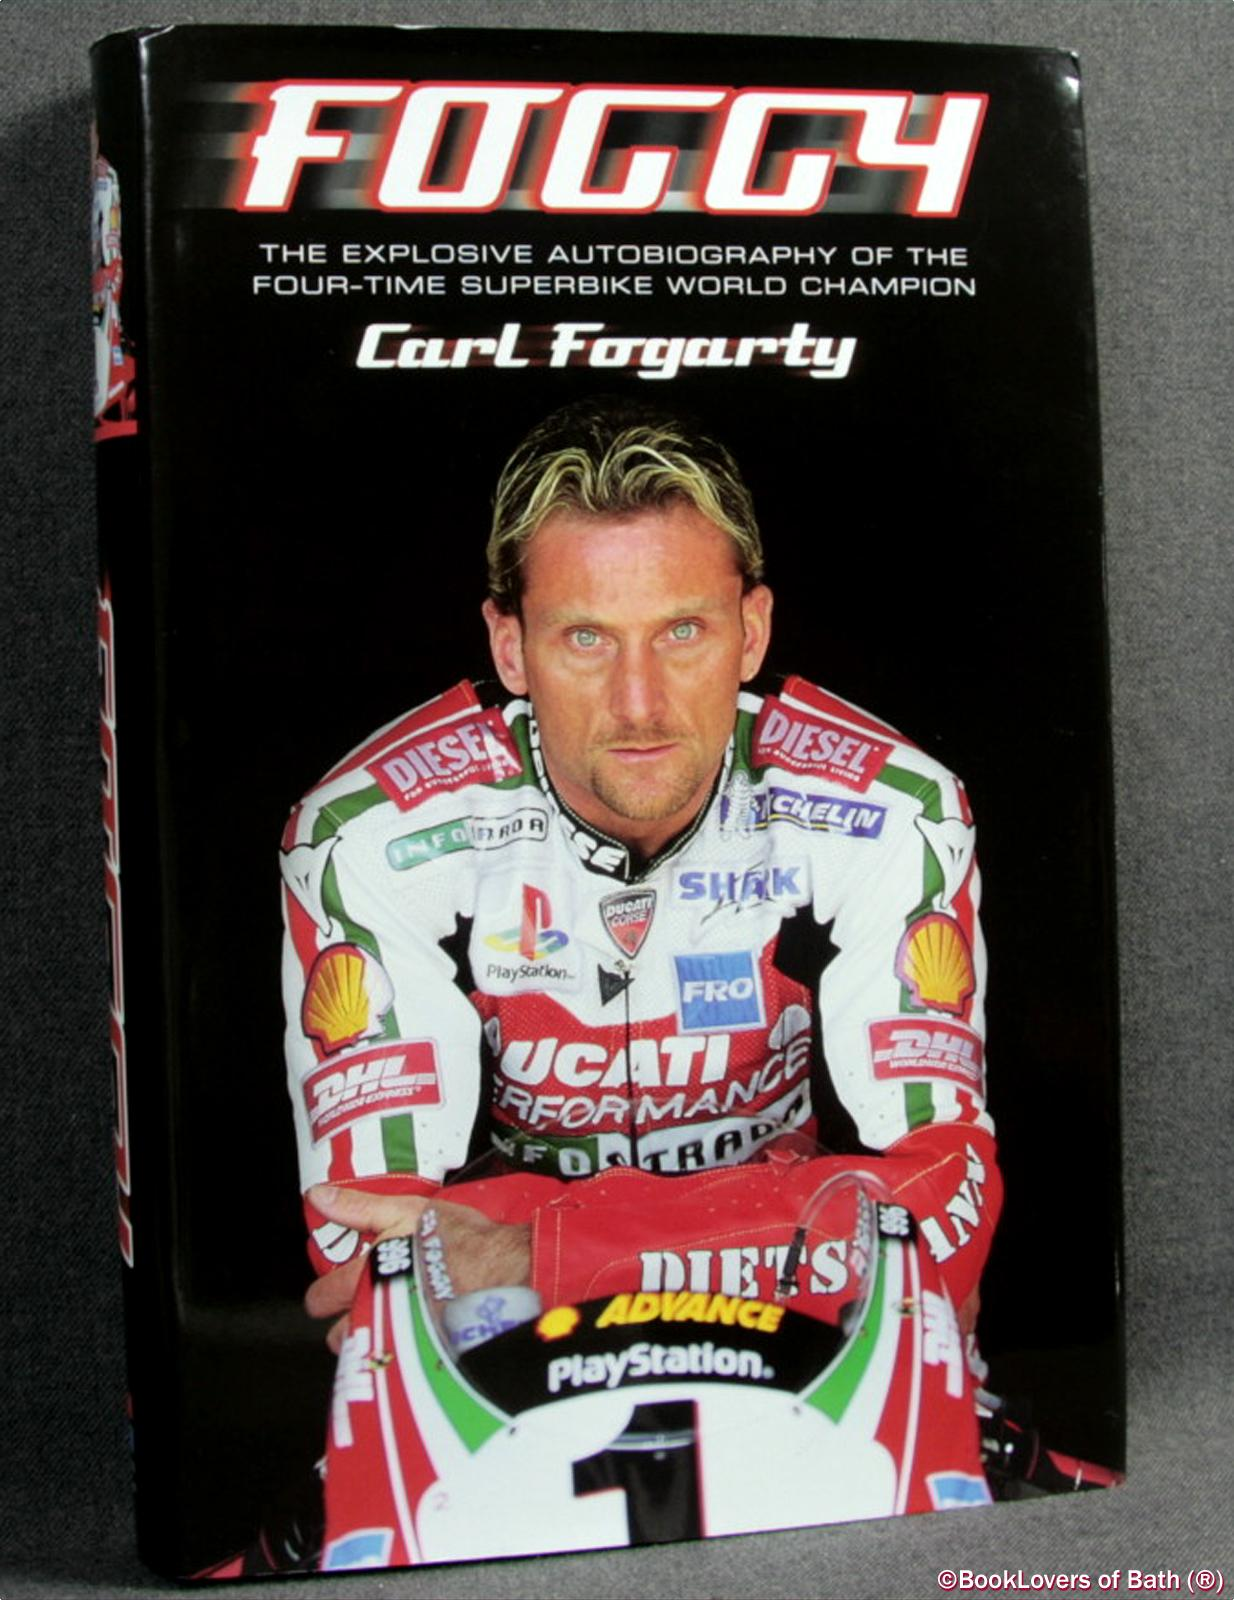 Foggy: The Explosive Autobiography of the Four-time Superbike World Champion - Carl Fogarty with Neil Bramwell